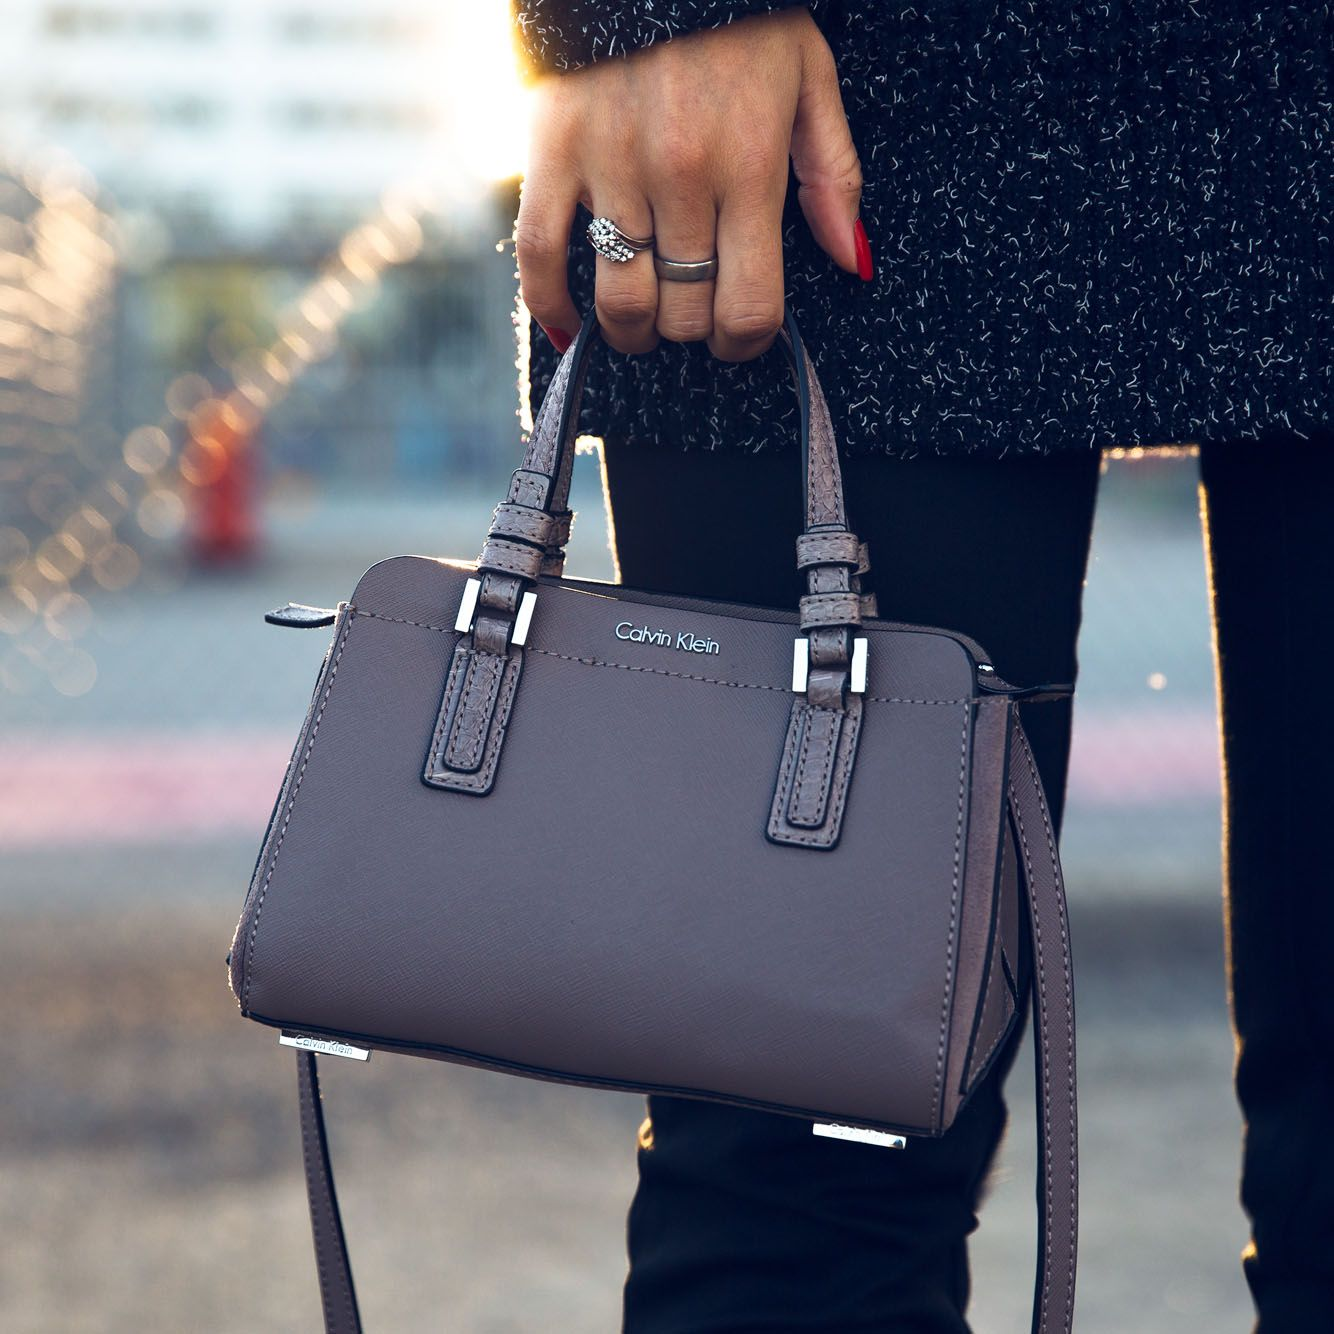 2c18050c822 A close-up of the Sophie micro saffiano leather duffle bag from Calvin Klein  Jeans, as styled by blogger @jannideler.